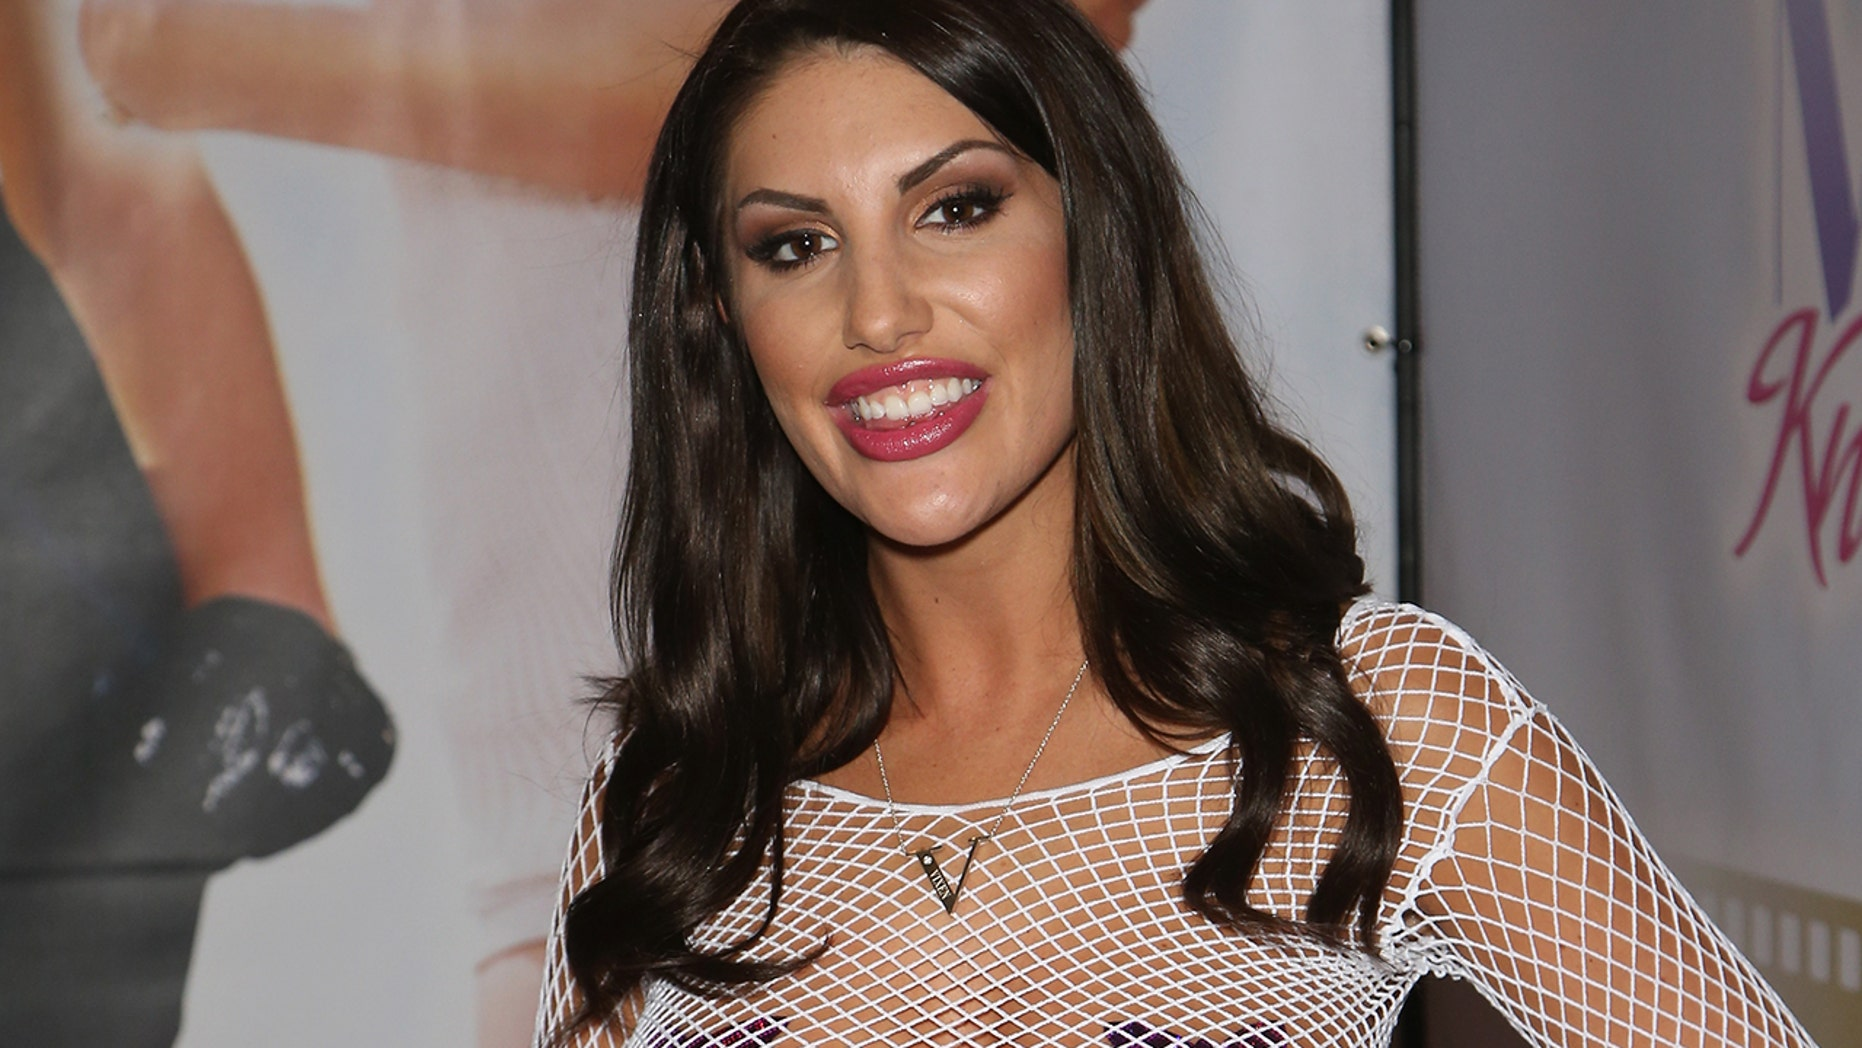 Porn star August Ames was found dead last Tuesday after she was cyberbullied for her recent tweets.